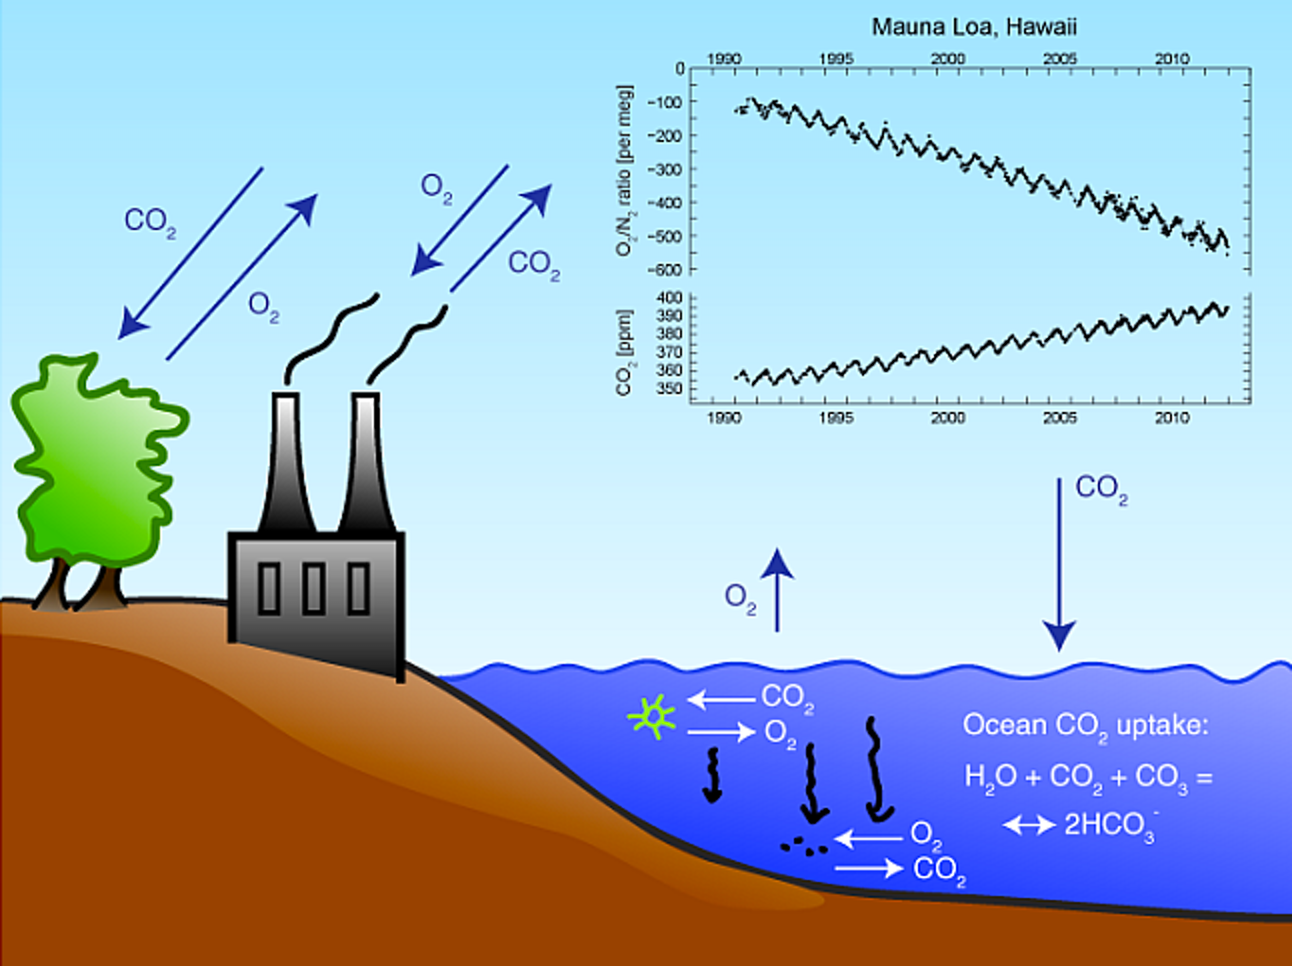 Measurements from Mauna Loa, Hawaii, show changes in atmospheric oxygen and carbon dioxide since 1990.